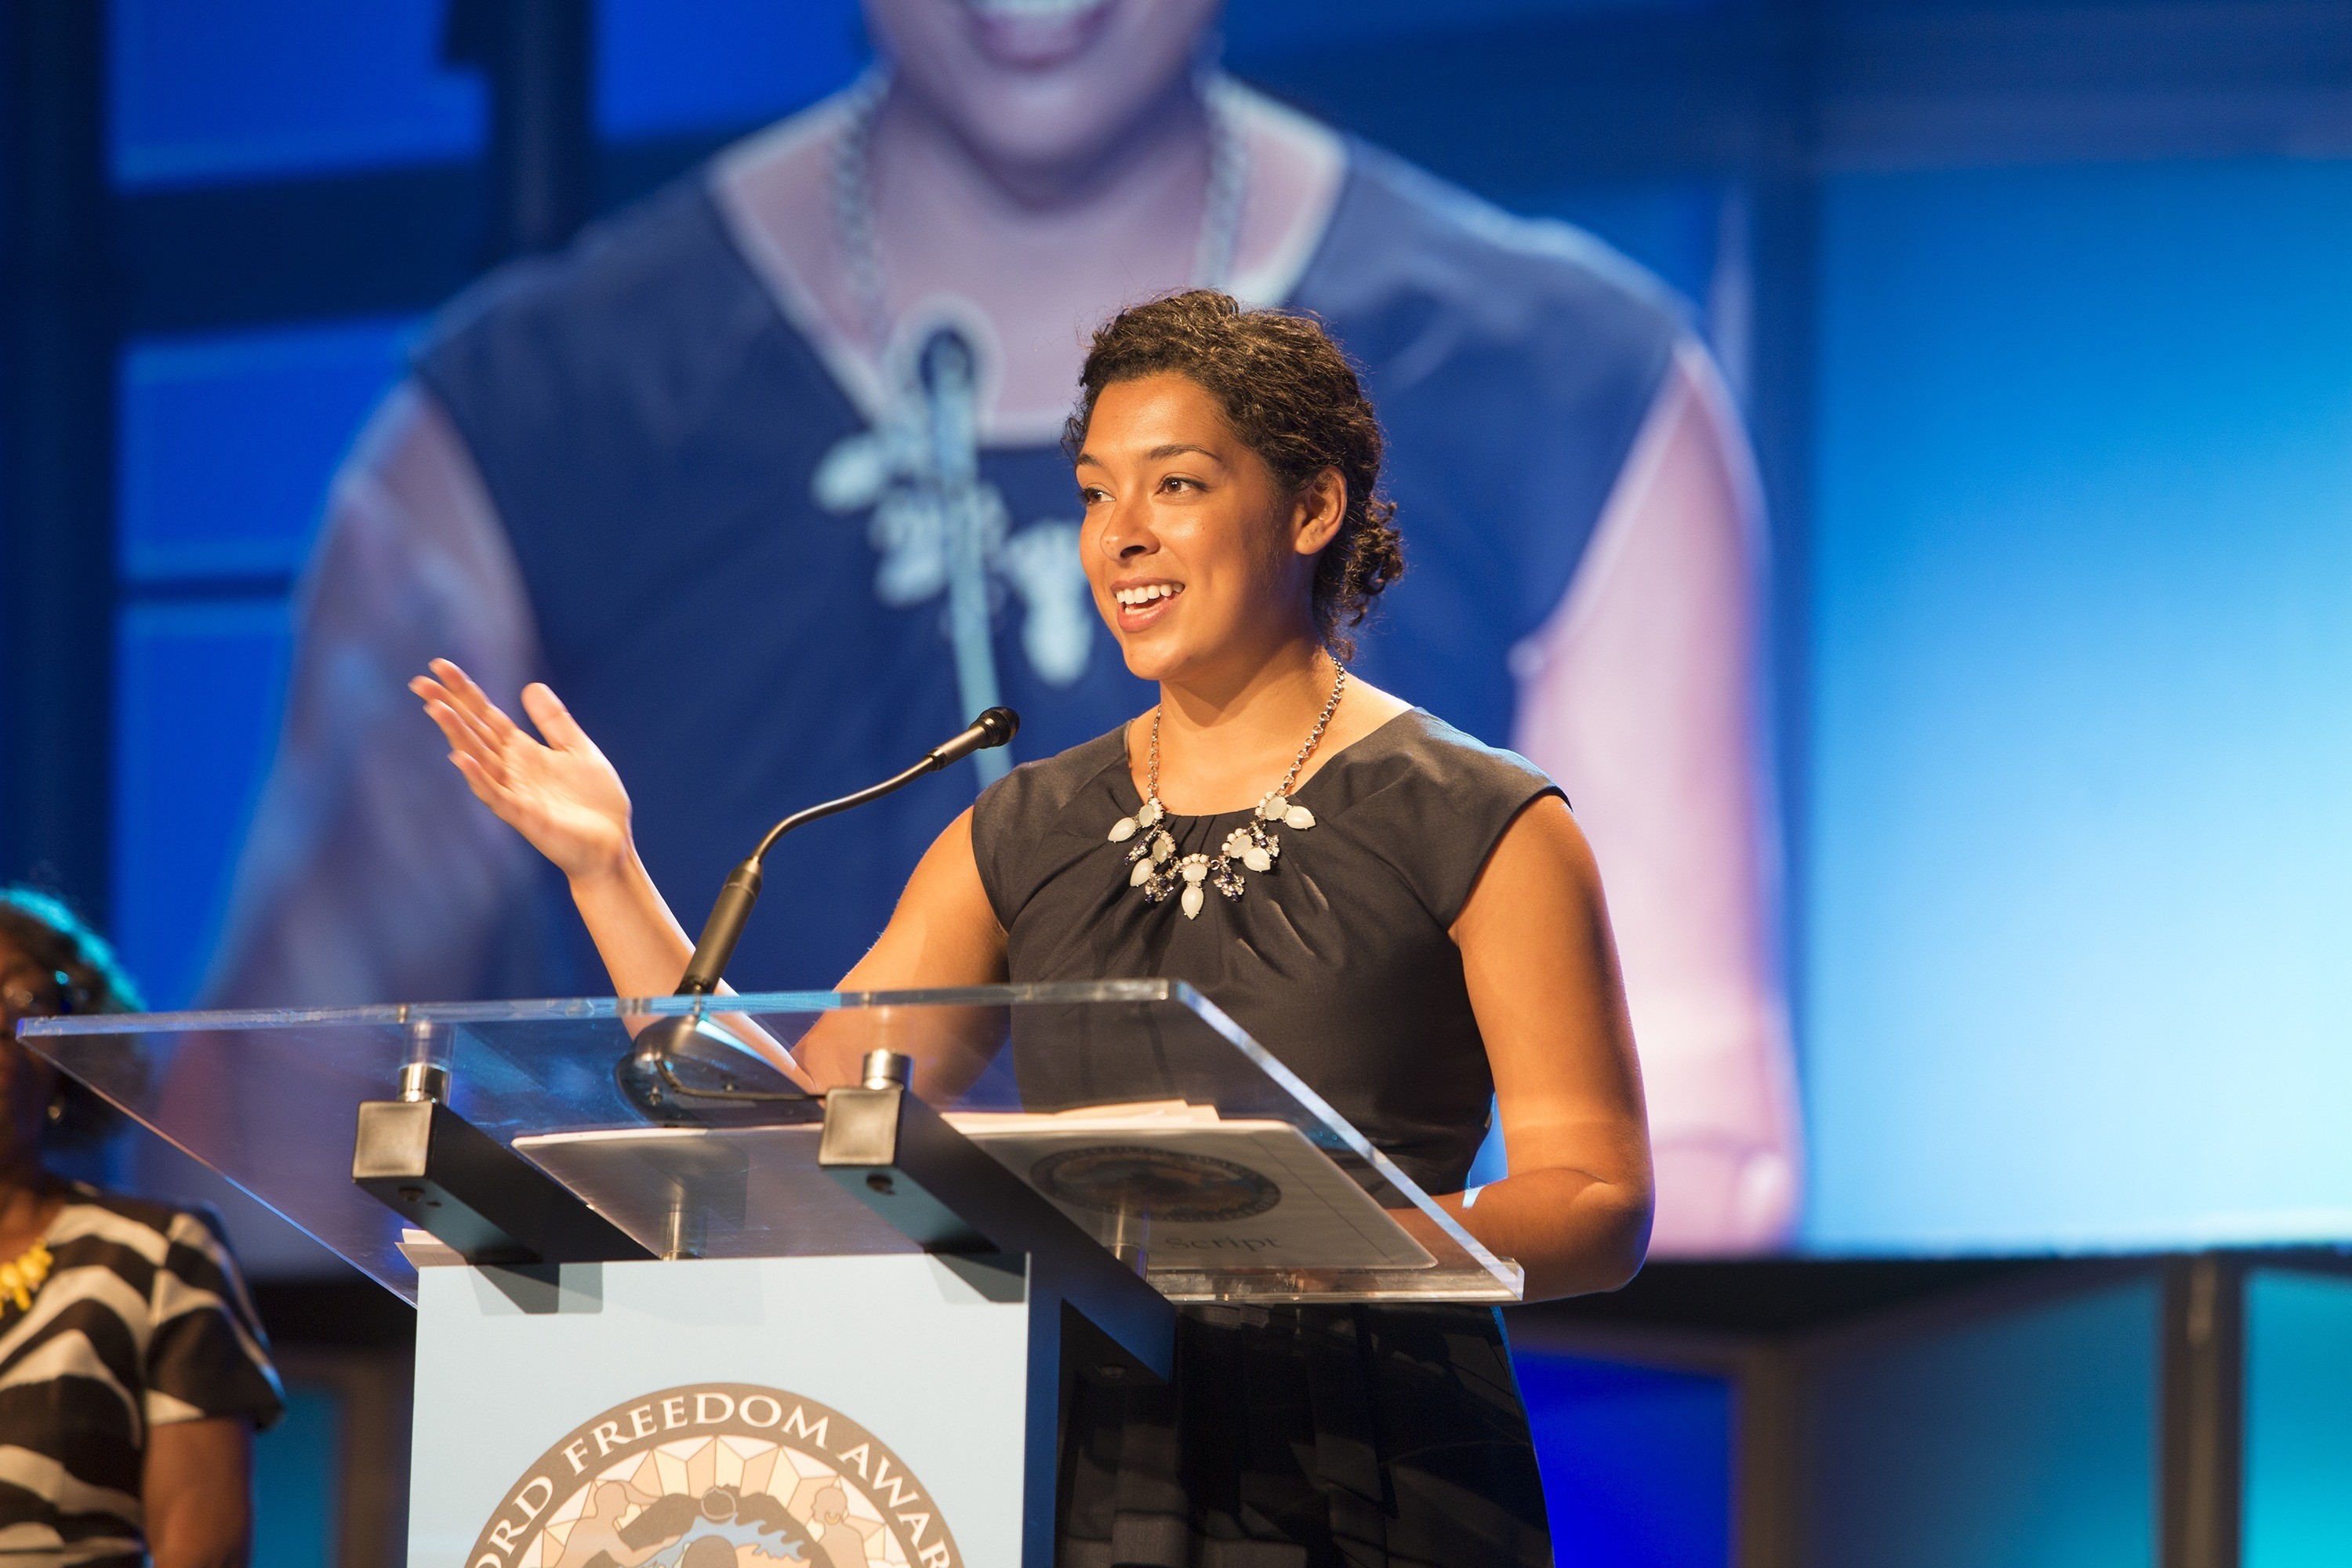 Founder and CEO of CODE2040 Laura Weidman Powers speaks at the 17th Annual Ford Freedom Awards on May 5, 2015.